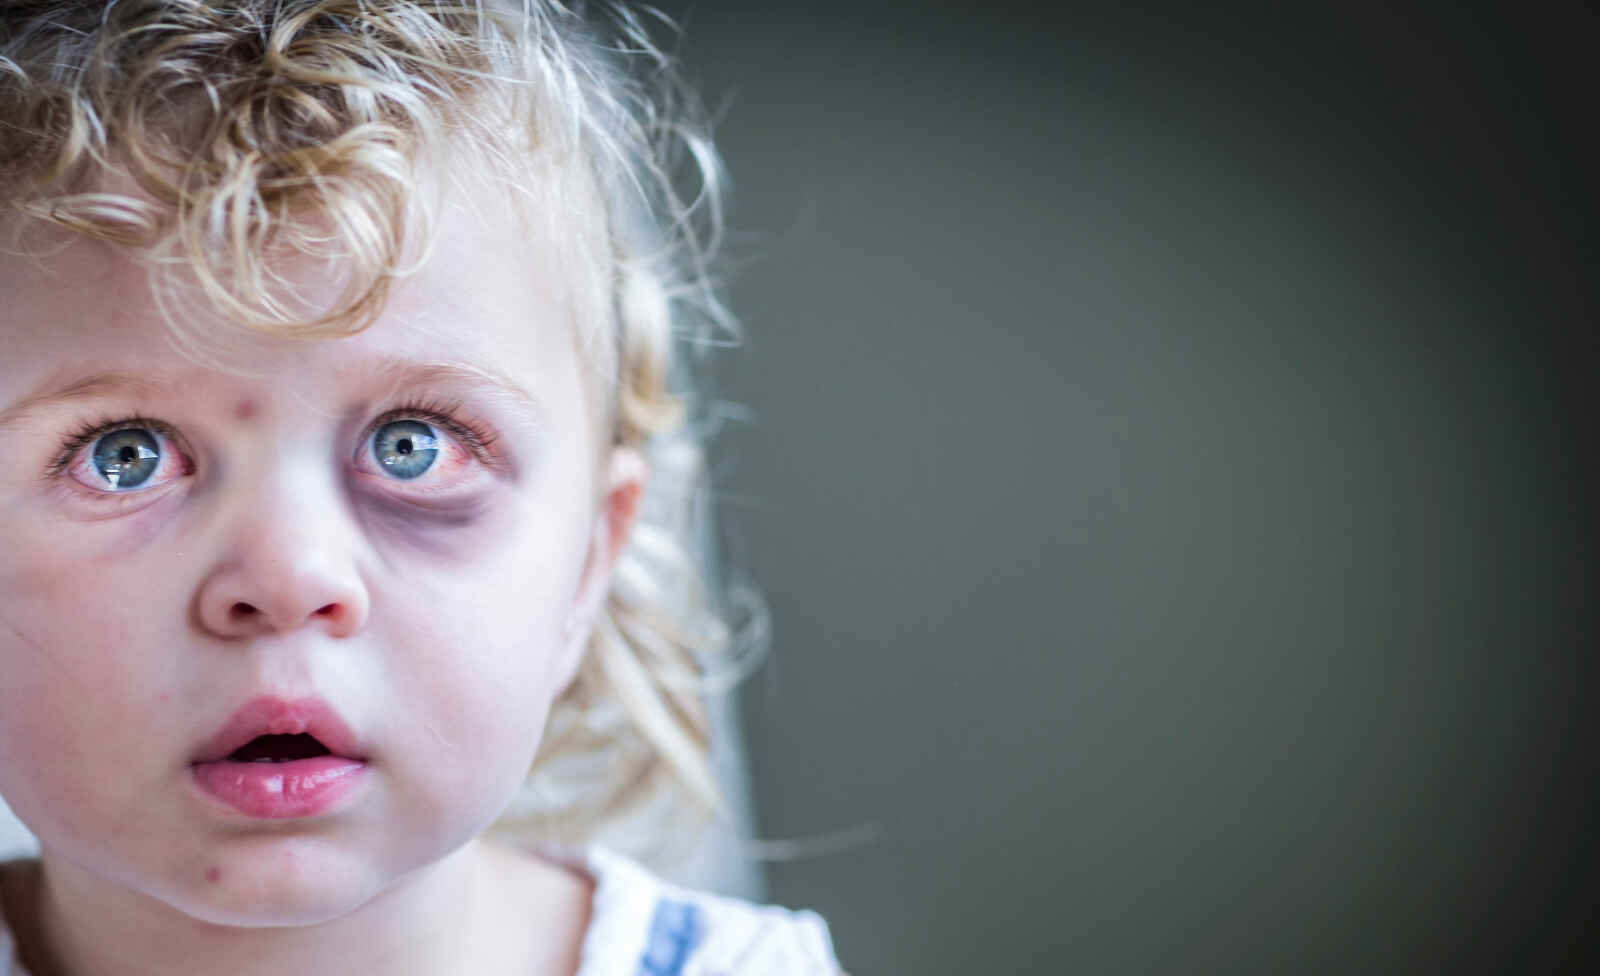 Together, we can end child abuse and neglect in the Golden Isles. image